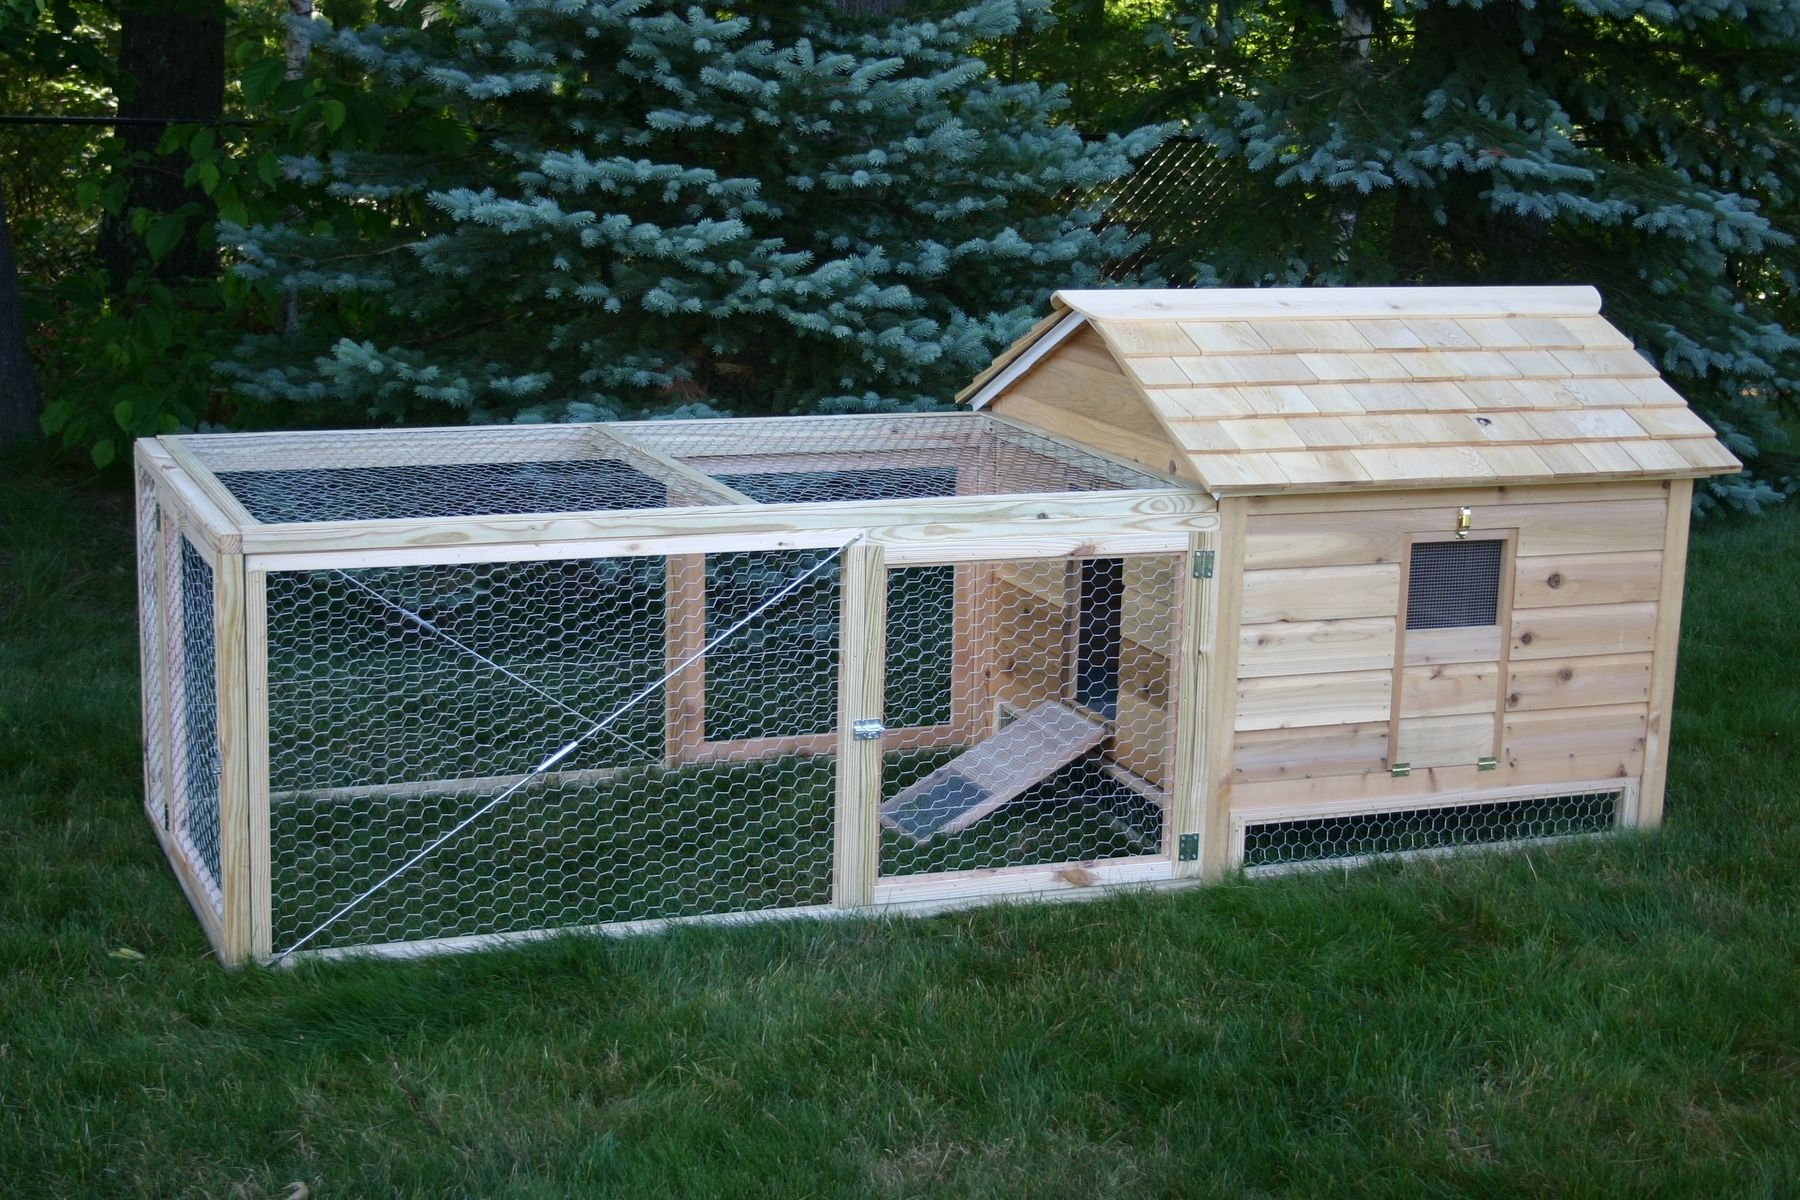 llc com duck woodworking chicken custommade hutch cedar hutches crafted lyonswoodworking hand coop by lyons